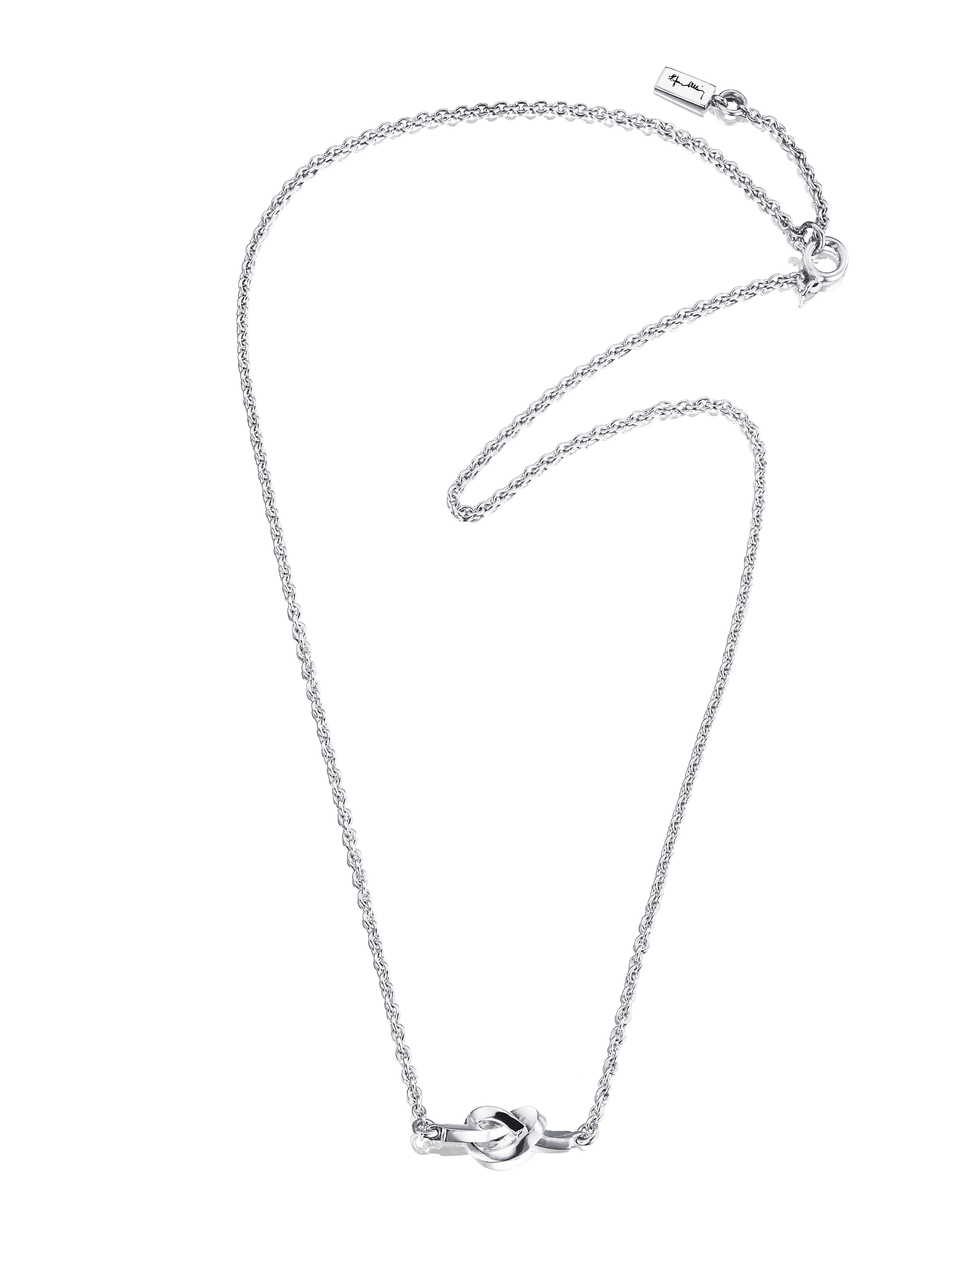 Love Knot Necklace 10-100-00966(1)